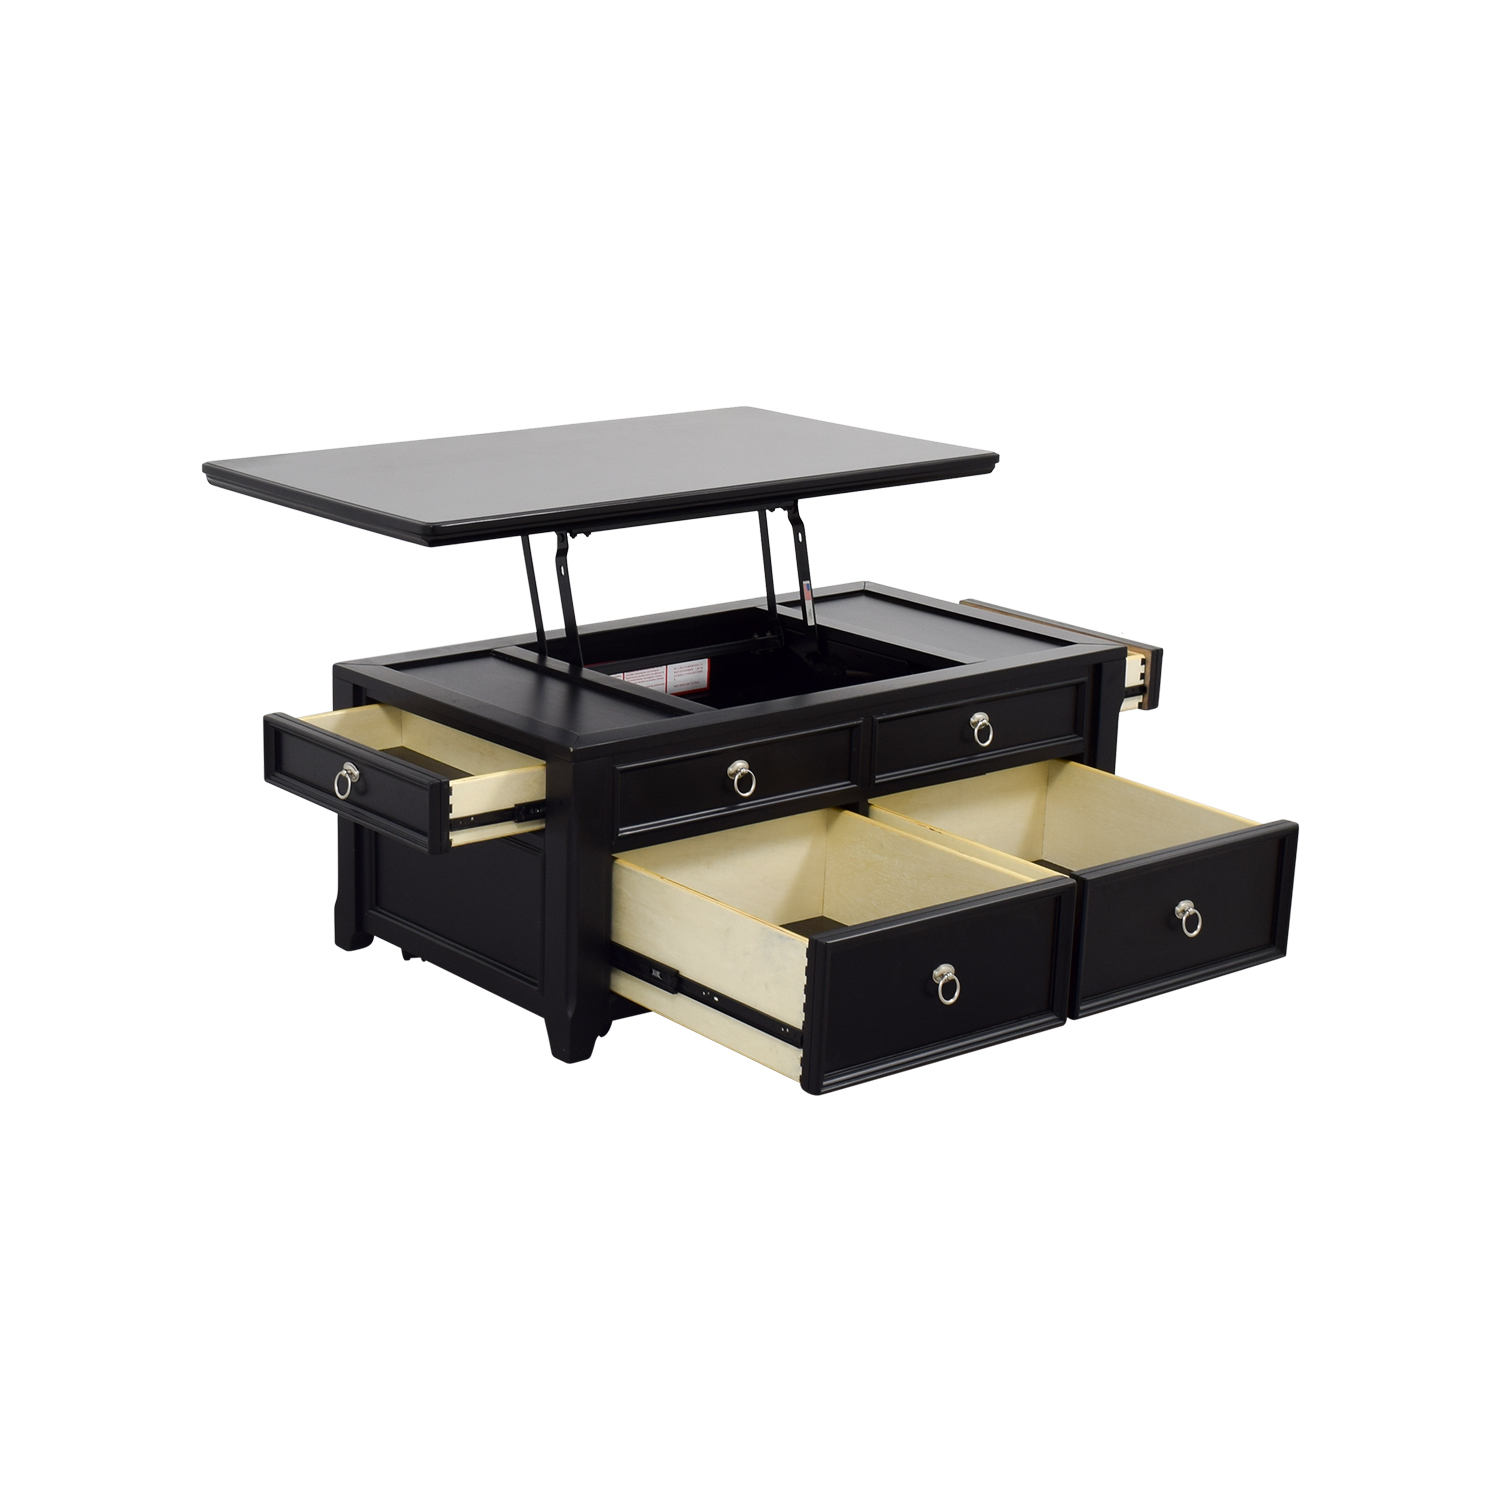 61 off ashley furniture ashley furniture black lift top coffee table tables Lifting top coffee table